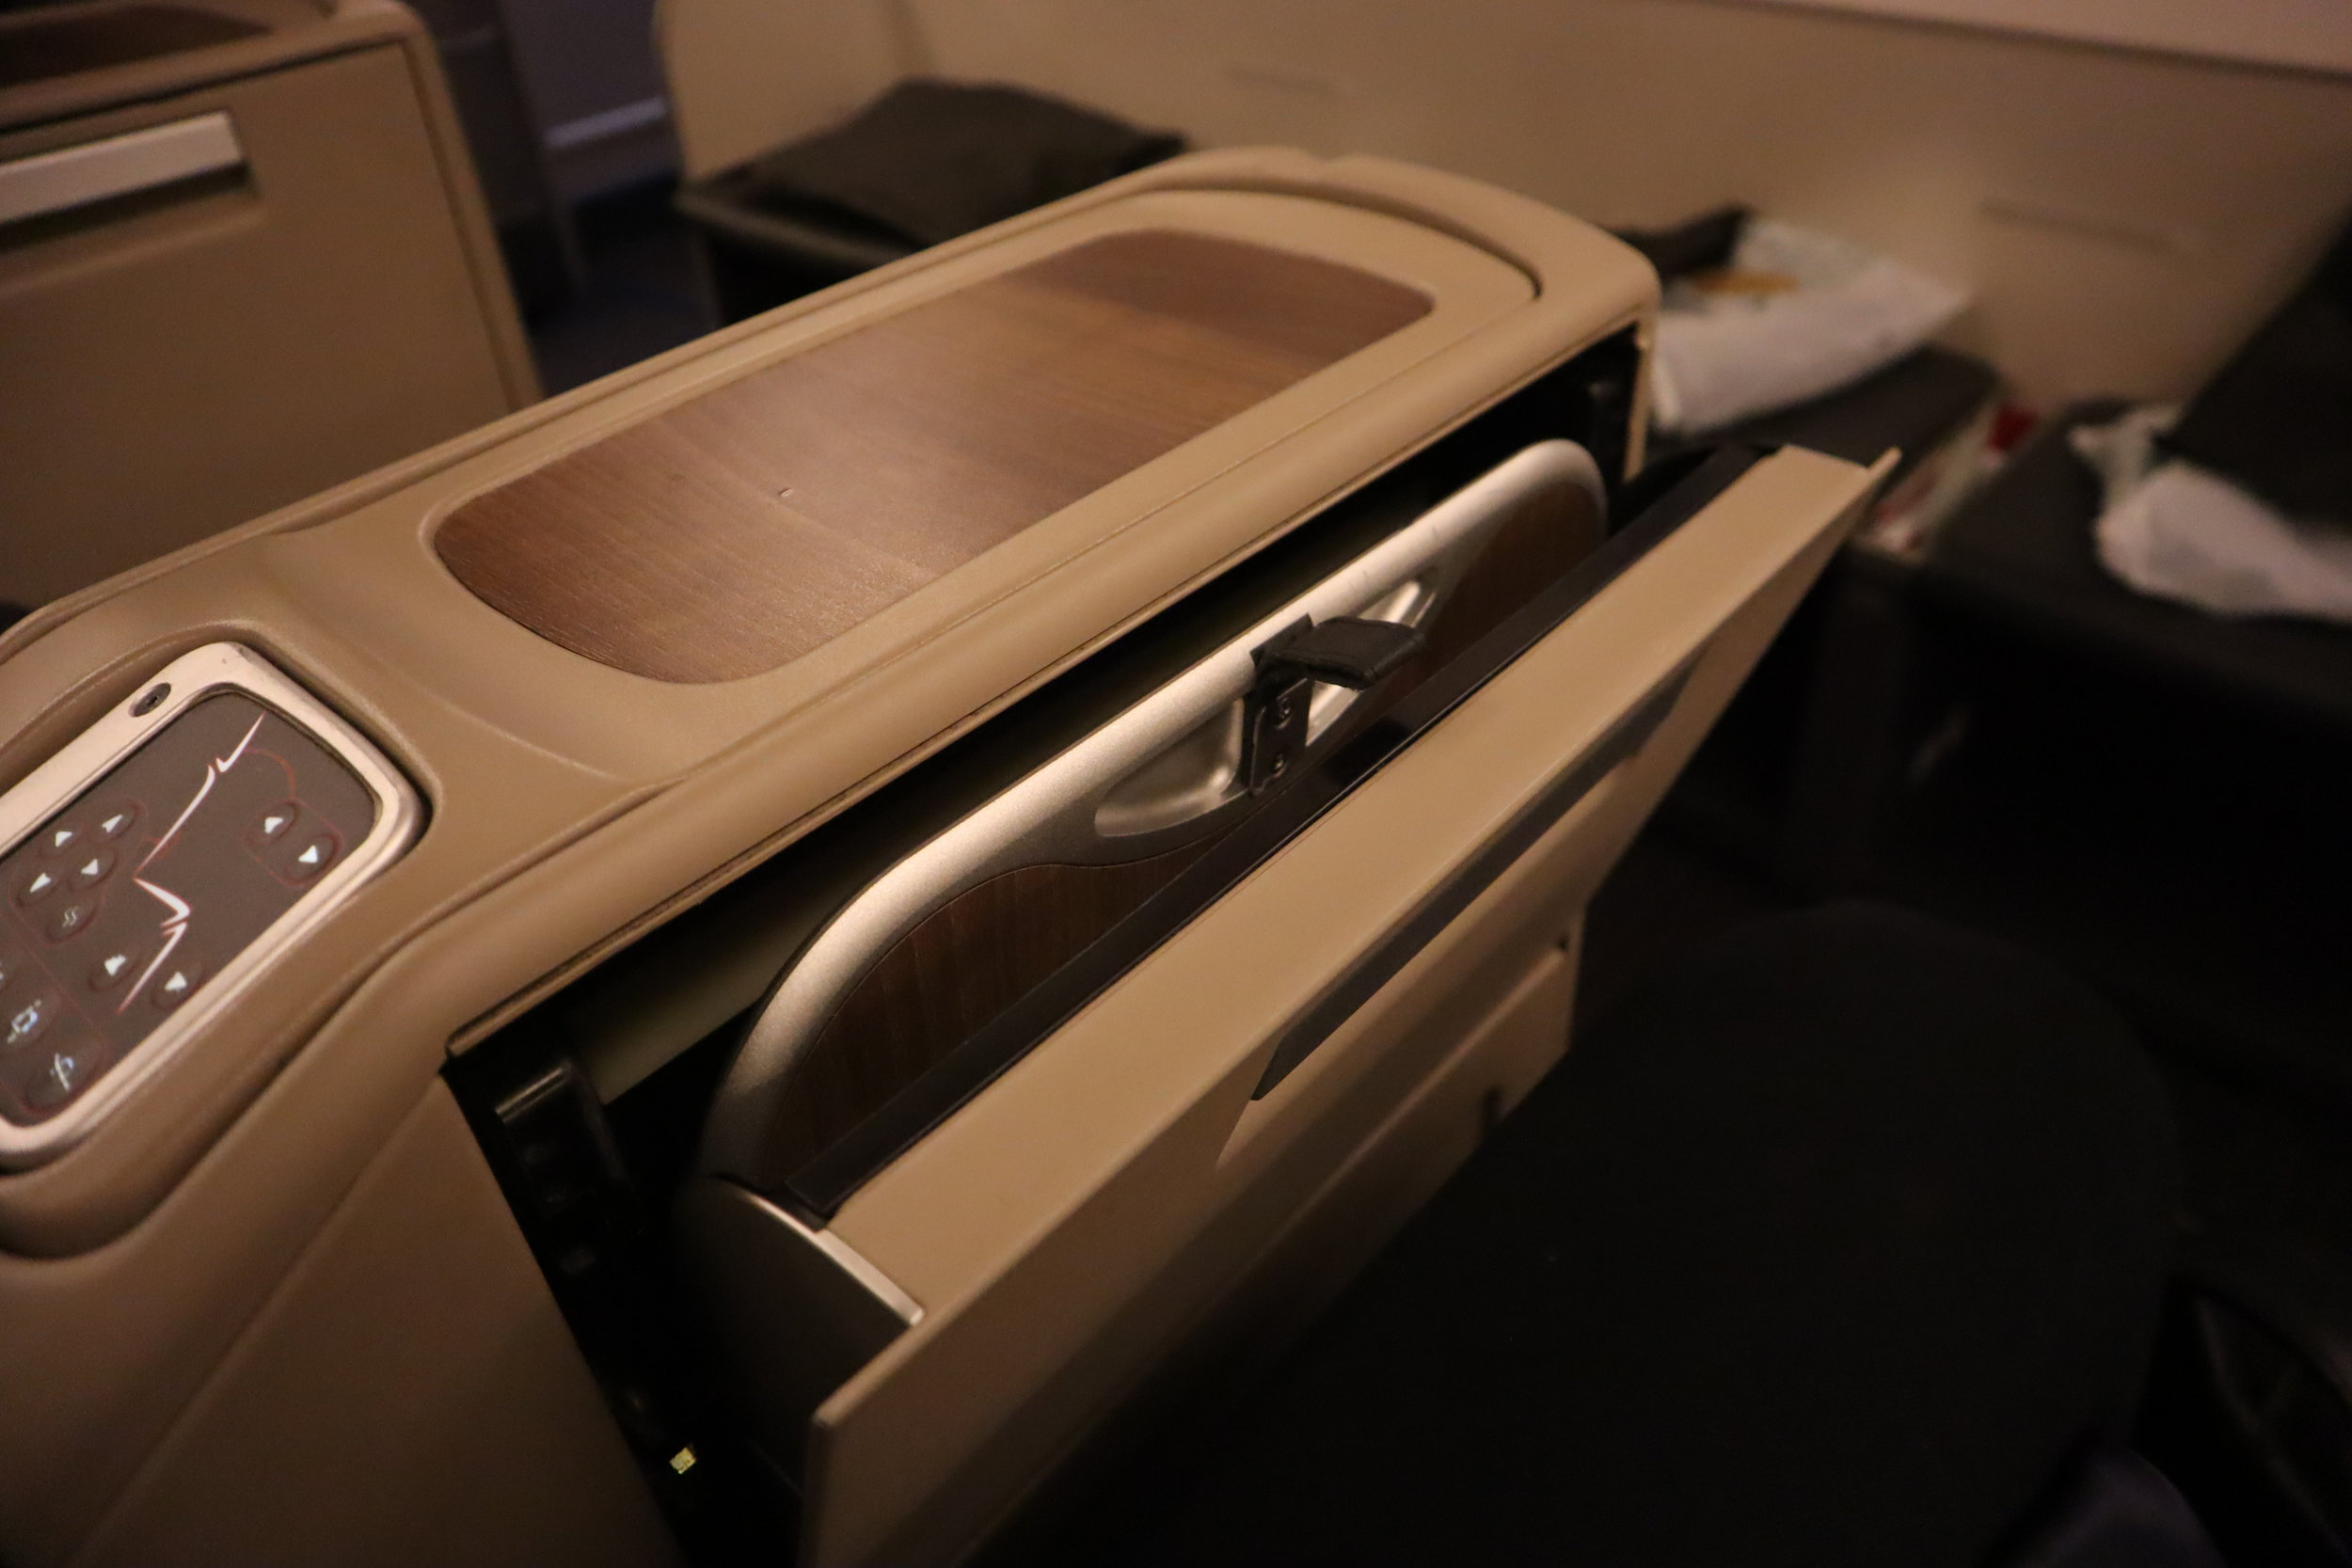 Turkish Airlines 777 business class – Tray table